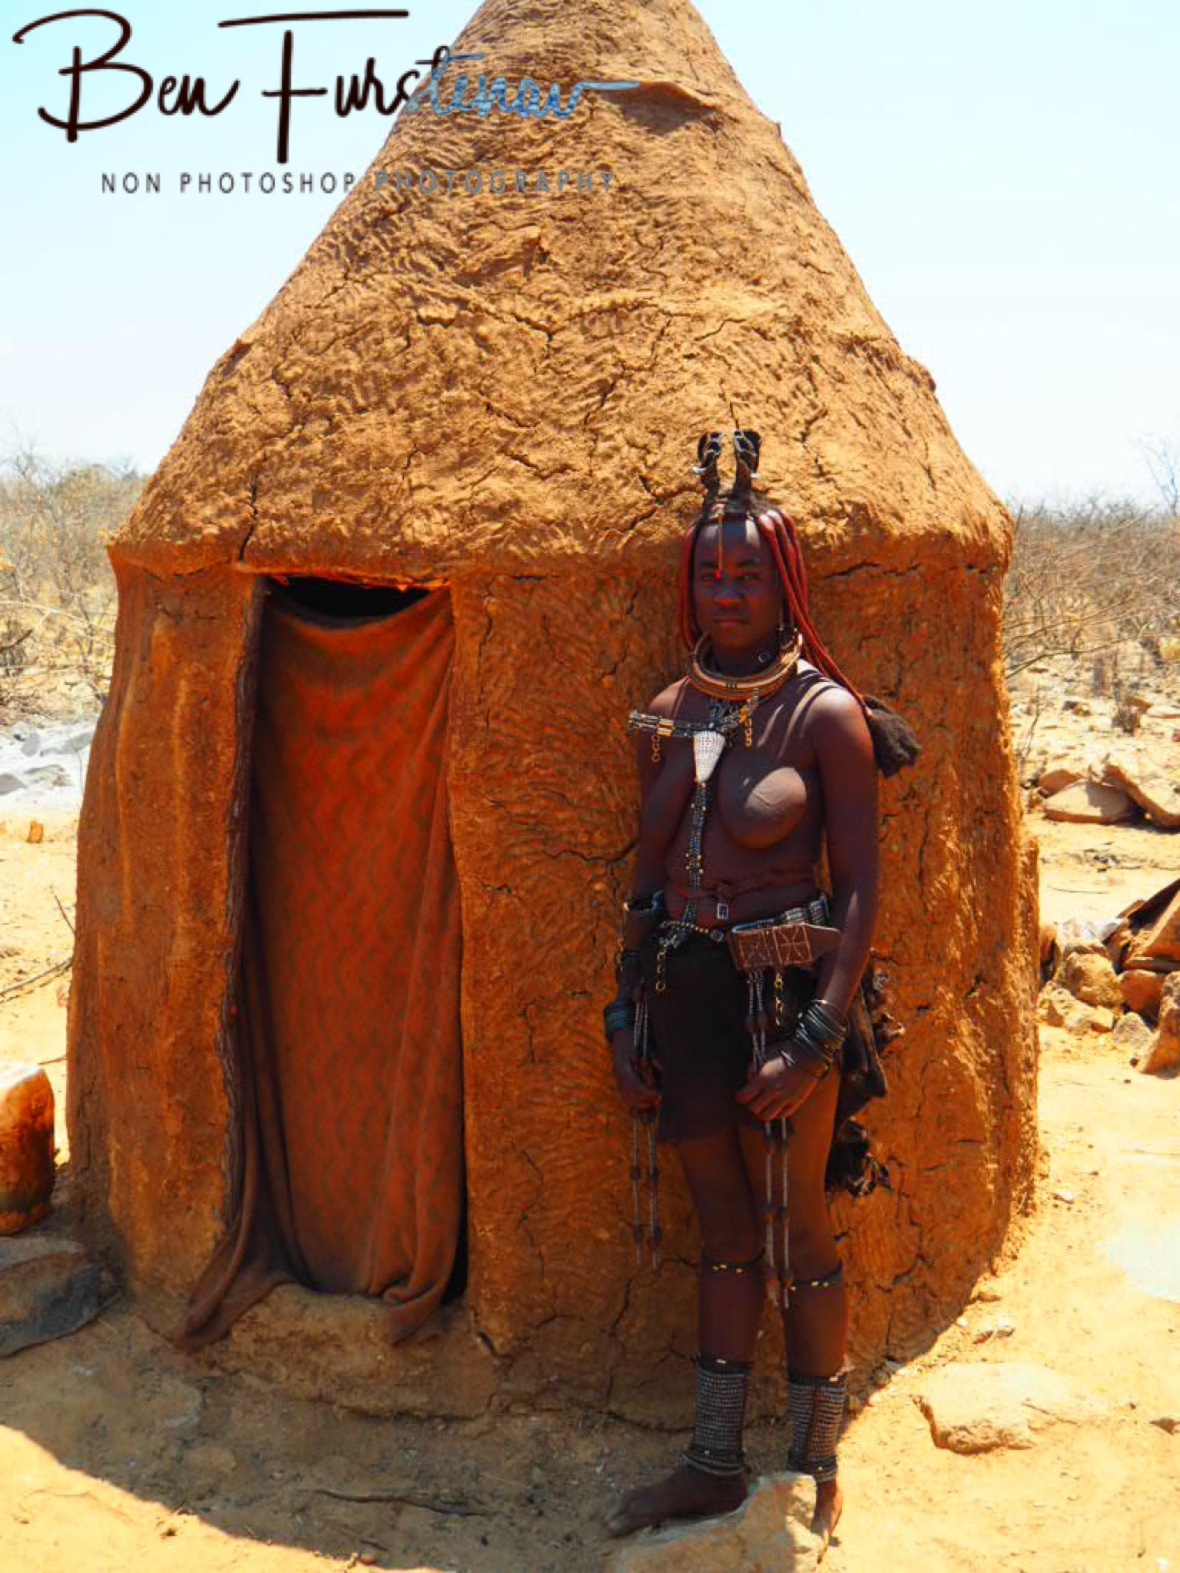 This woman has one child, Omusaona Himba Village, Kamanjab, Namibia